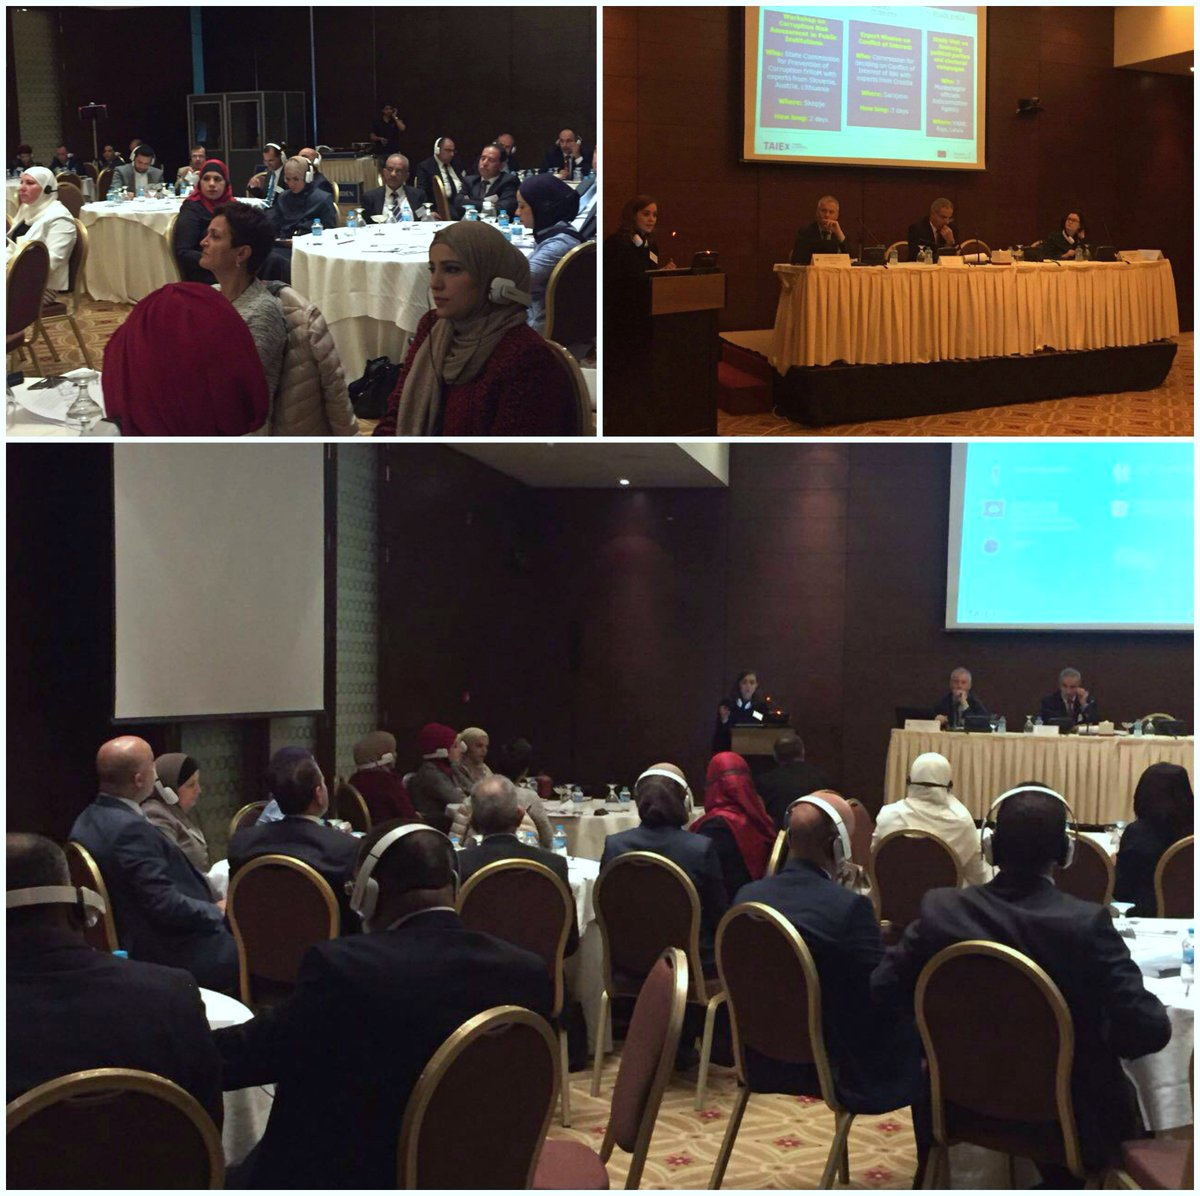 Happening now in #Amman: #EUTaiex workshop on &quot;Good #governance: Promoting #integrity&quot;. More on #EUTaiex http:// europa.eu/!mr43MR  &nbsp;  <br>http://pic.twitter.com/Uwp18HV1Ce